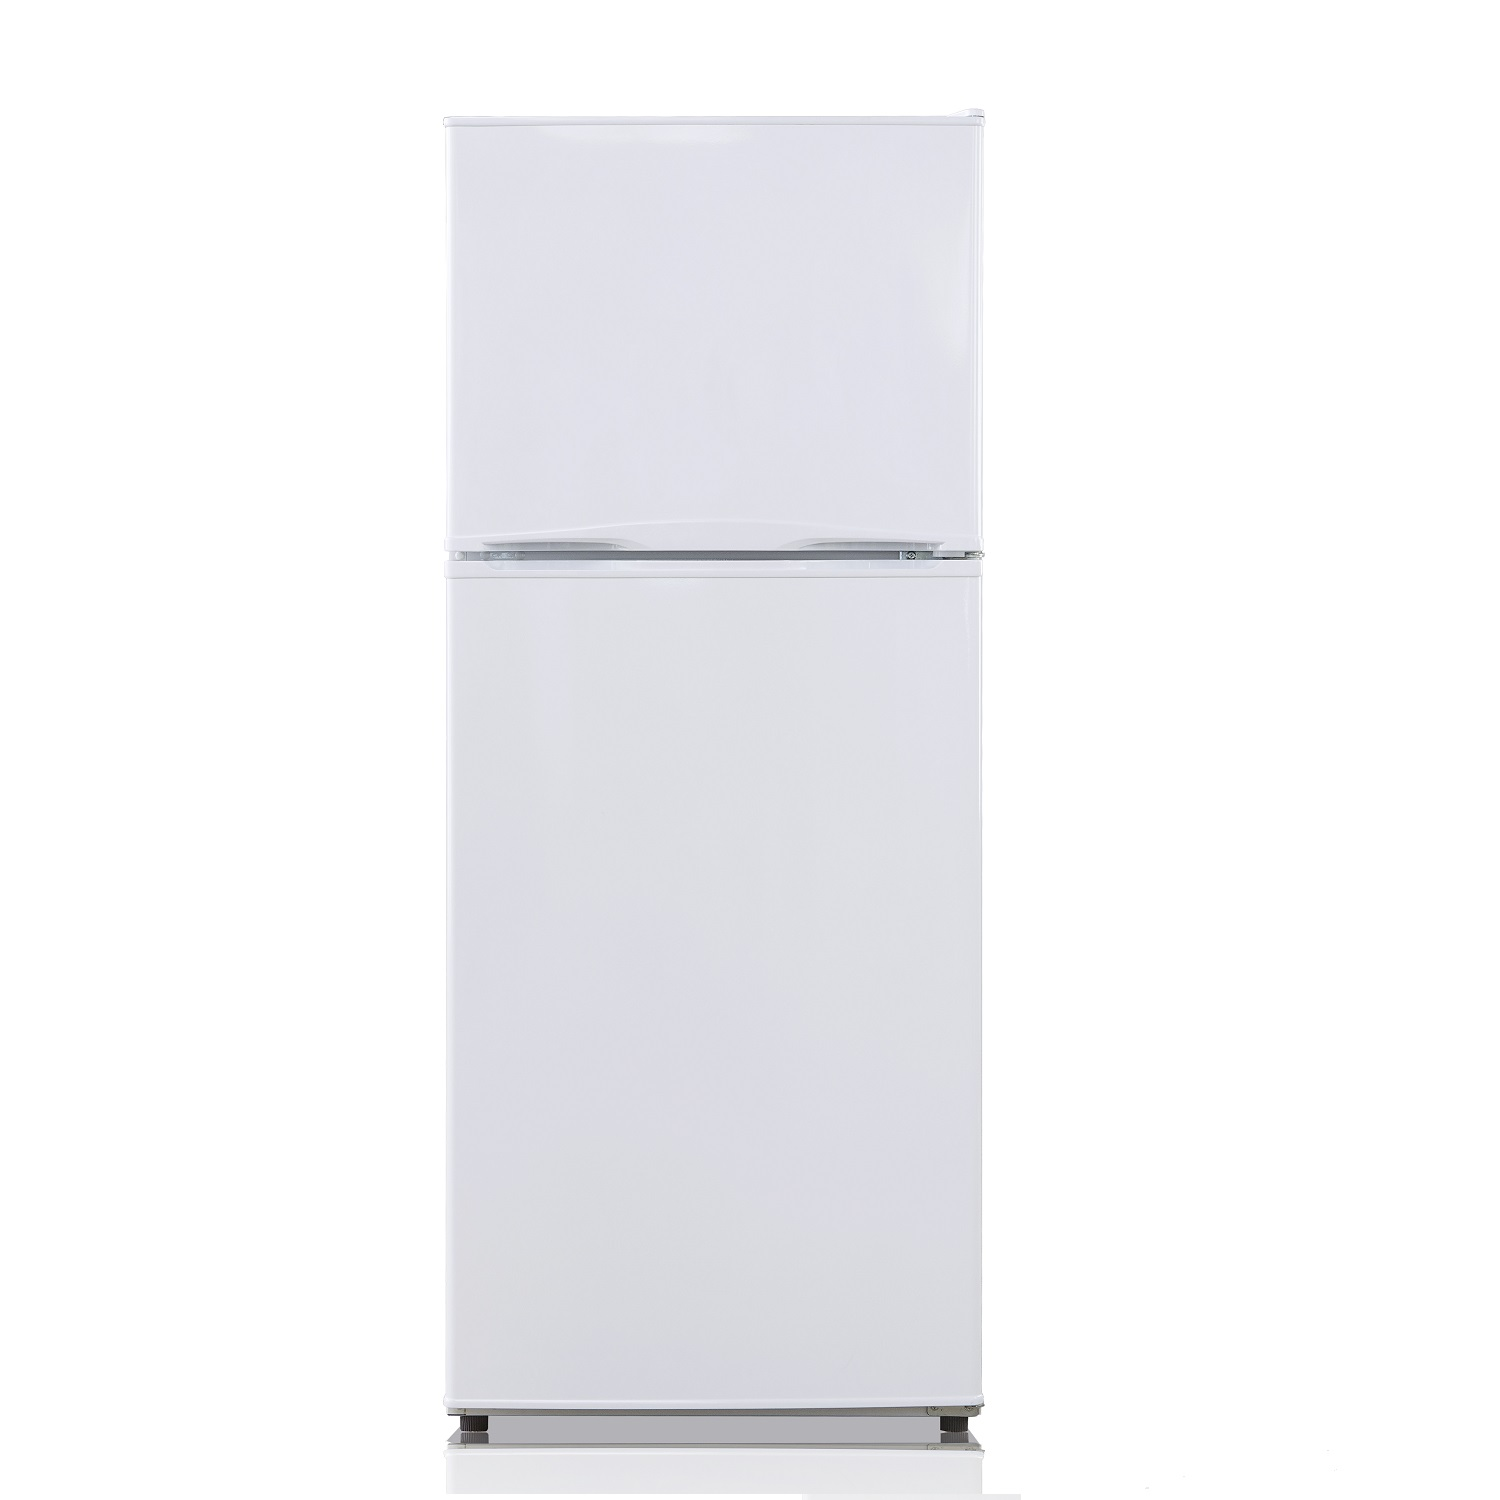 9.9 Cu. Ft. Top Mounted Refrigerator, White